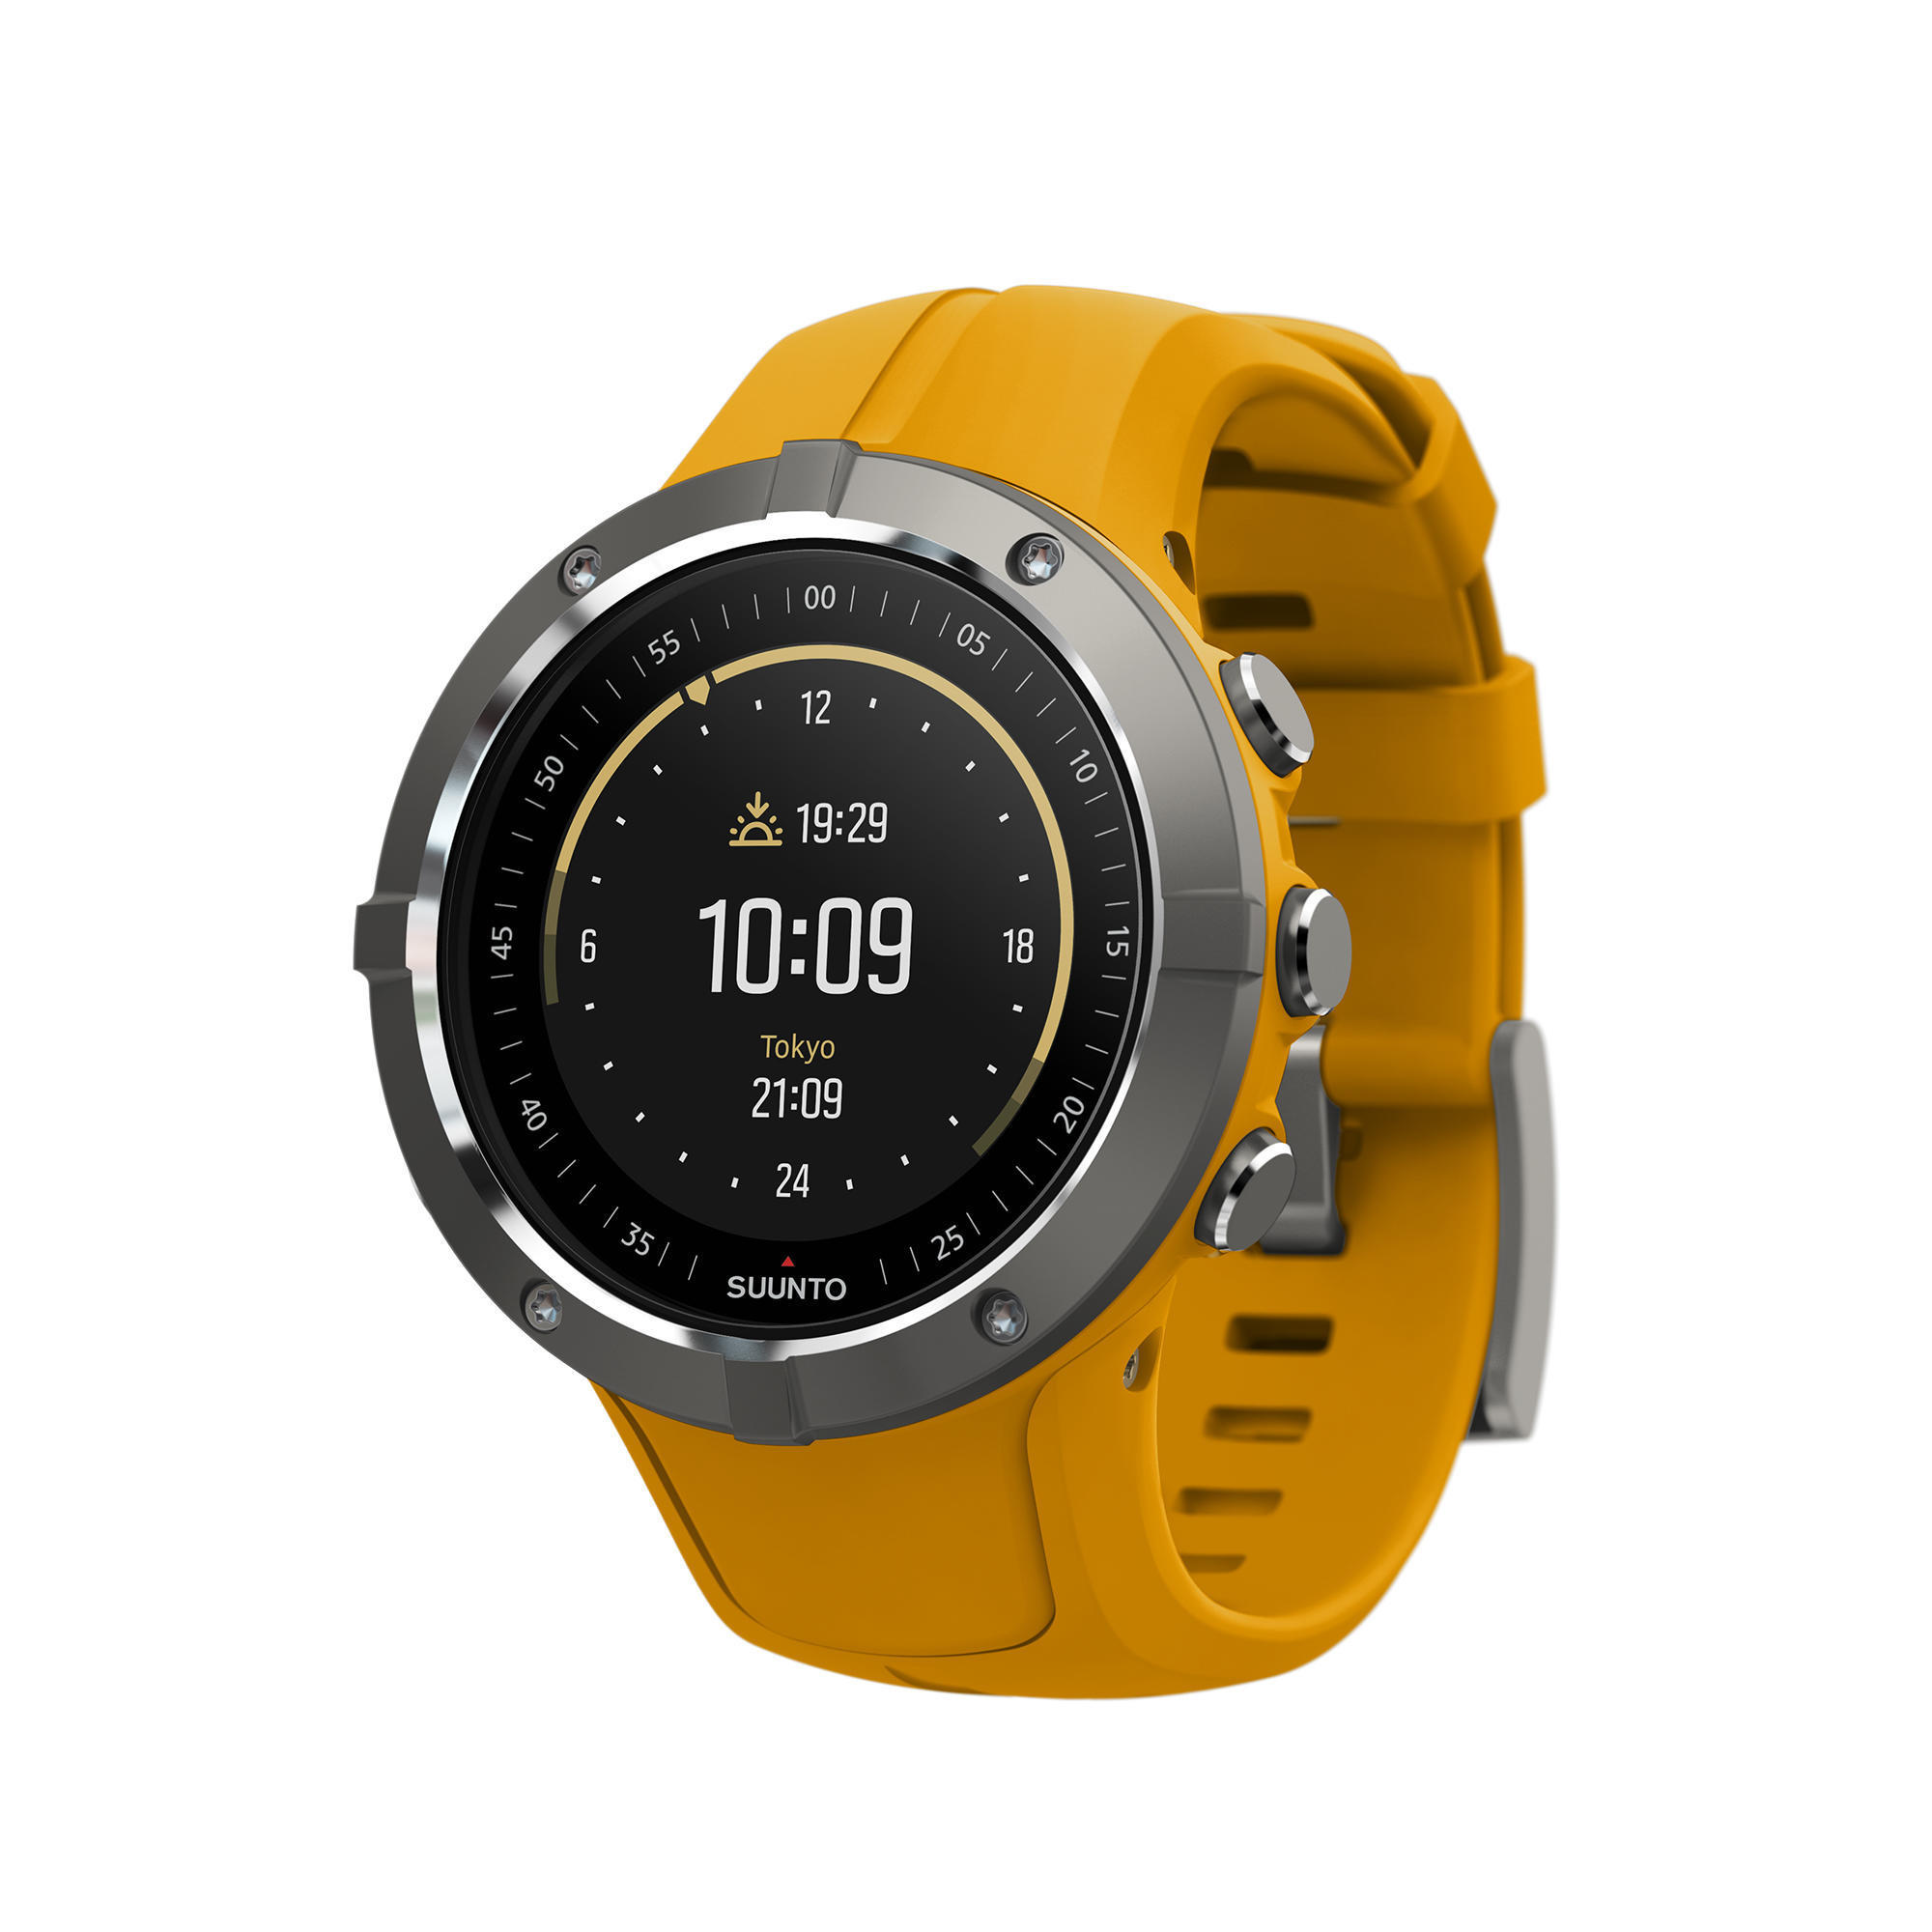 professional sale shades of great quality Comprar Relojes Gps | Decathlon